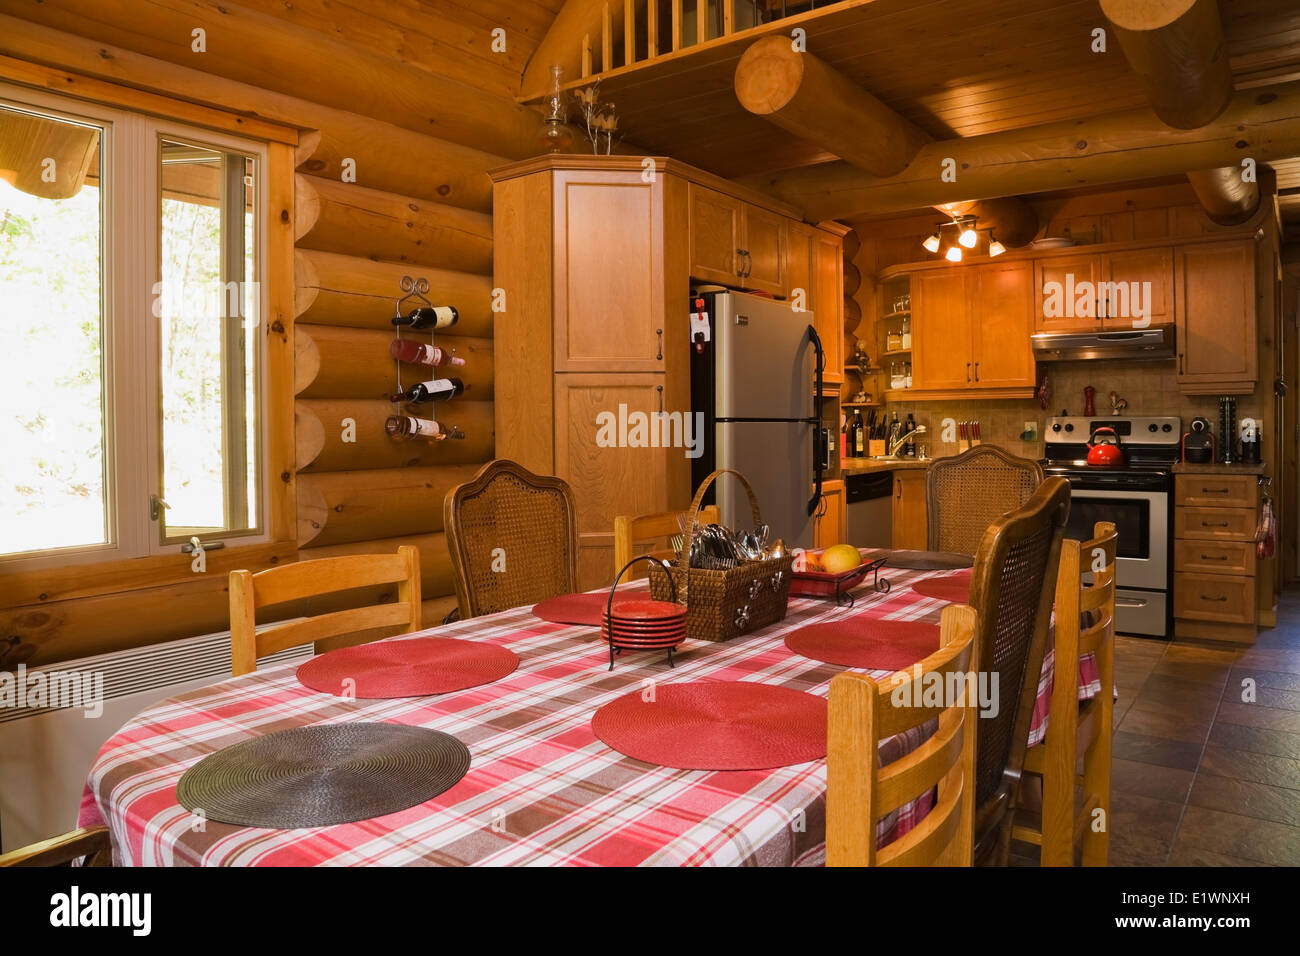 Dining Room Table Kitchen Inside A Residential Log Home Laurentians Quebec Canada This Image Is Property Released CUPR0211